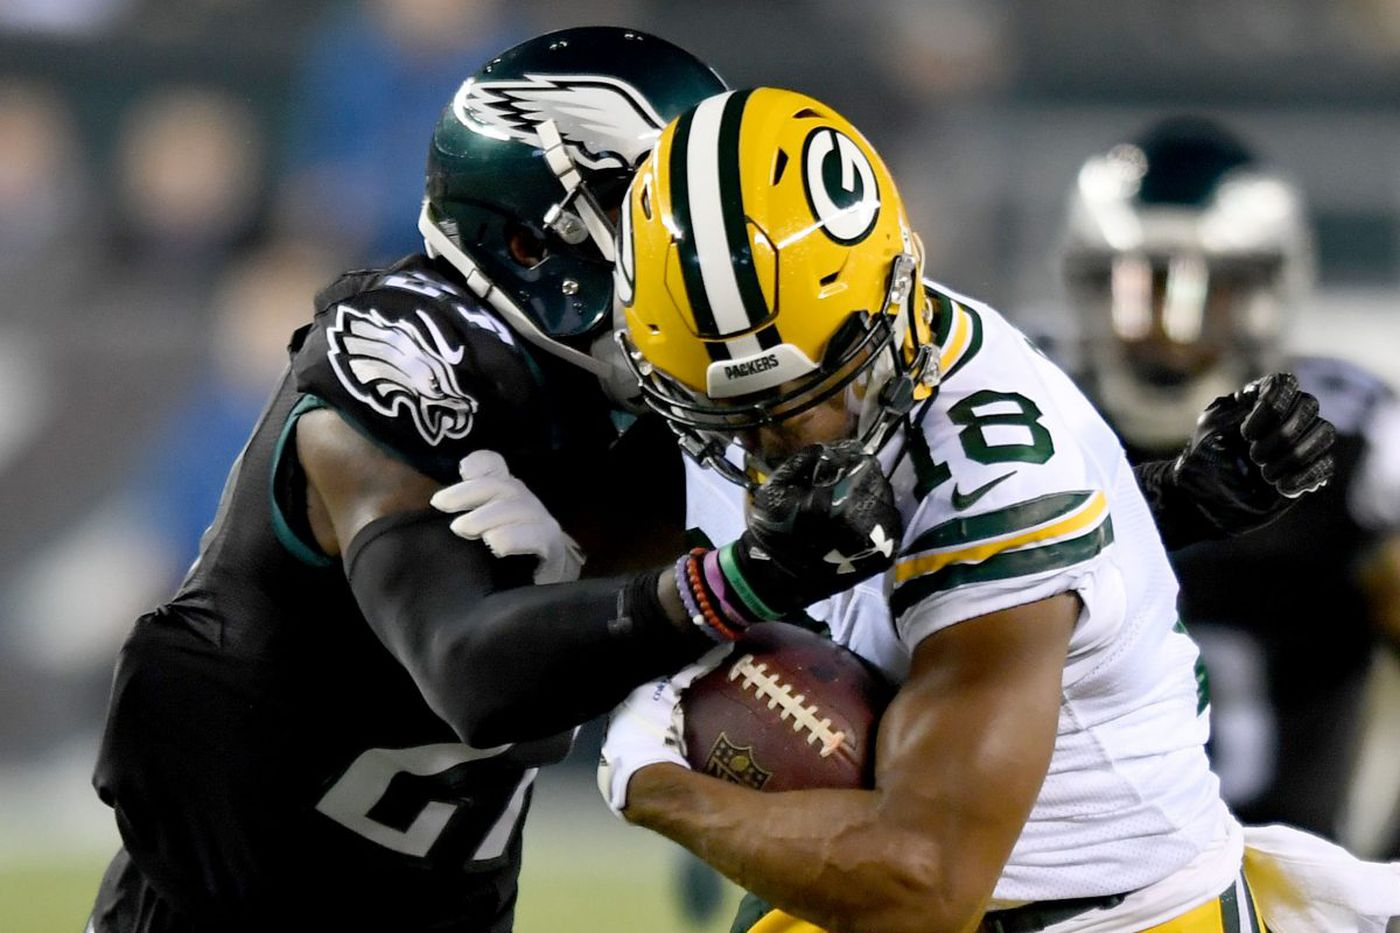 New CTE research on concussions rattles Eagles | Marcus Hayes